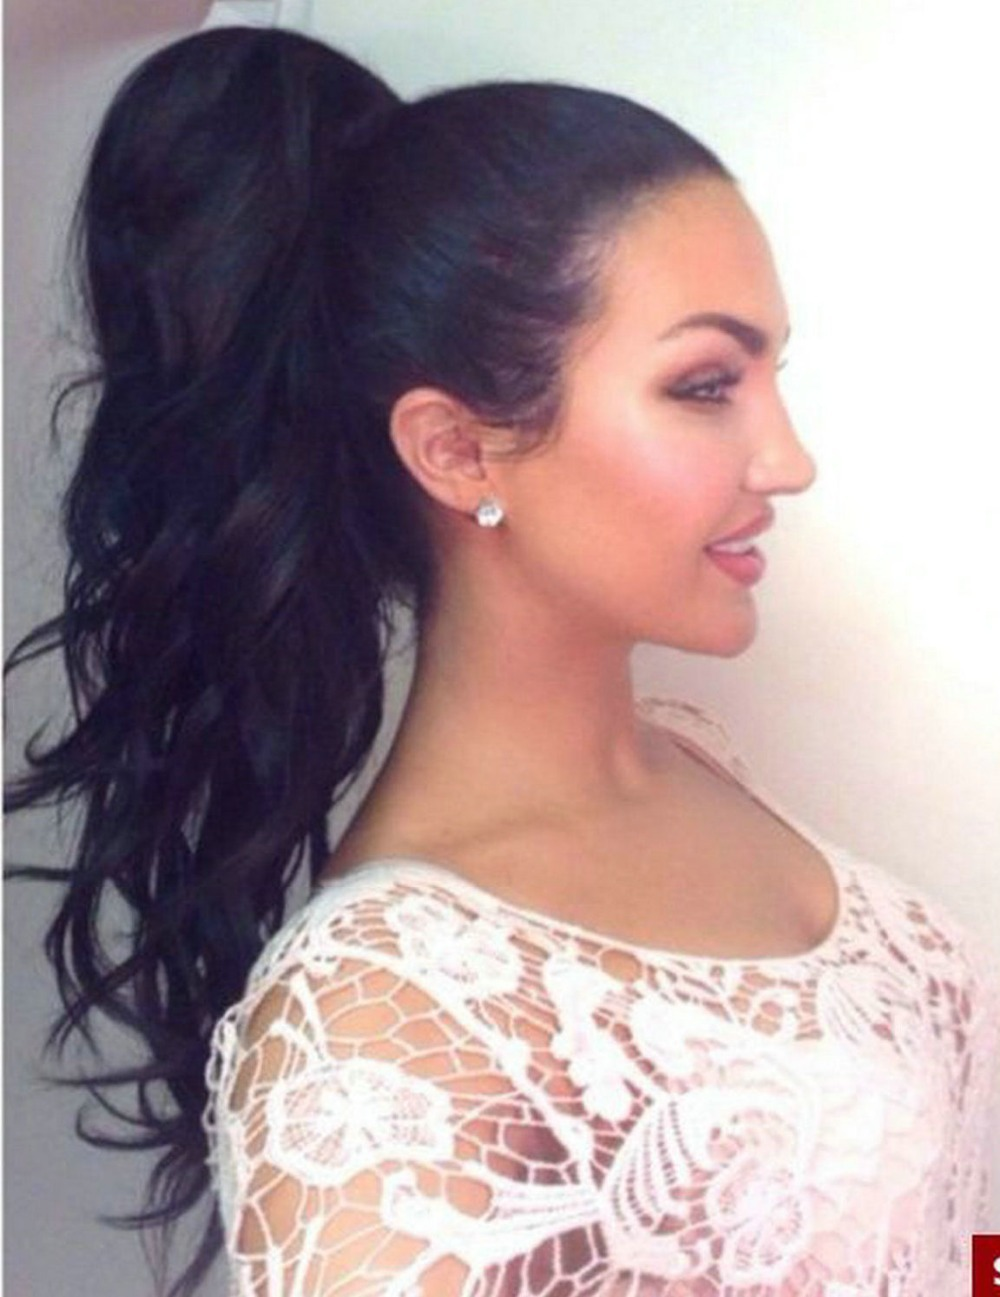 Fashion style Ponytail High hairstyles curly for woman